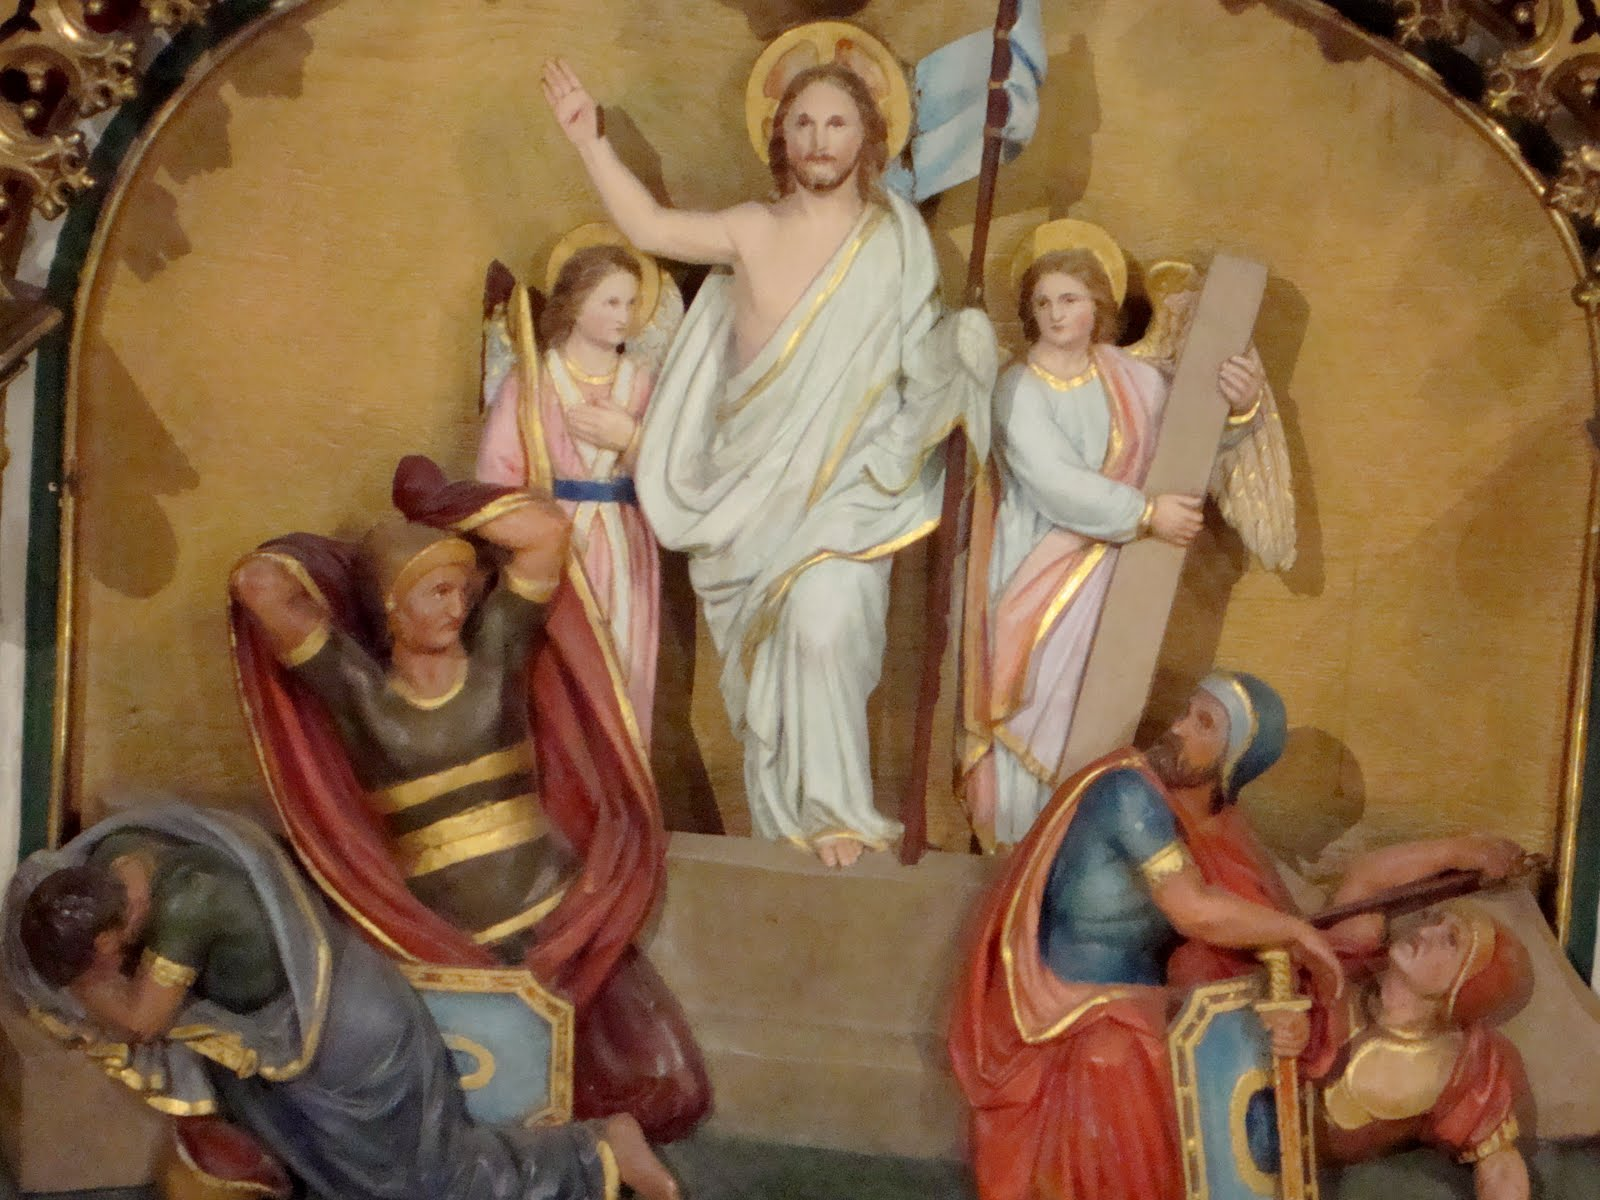 The Resurrection from the Main Altar, Notre Dame Cathedral, Ottawa dans immagini sacre